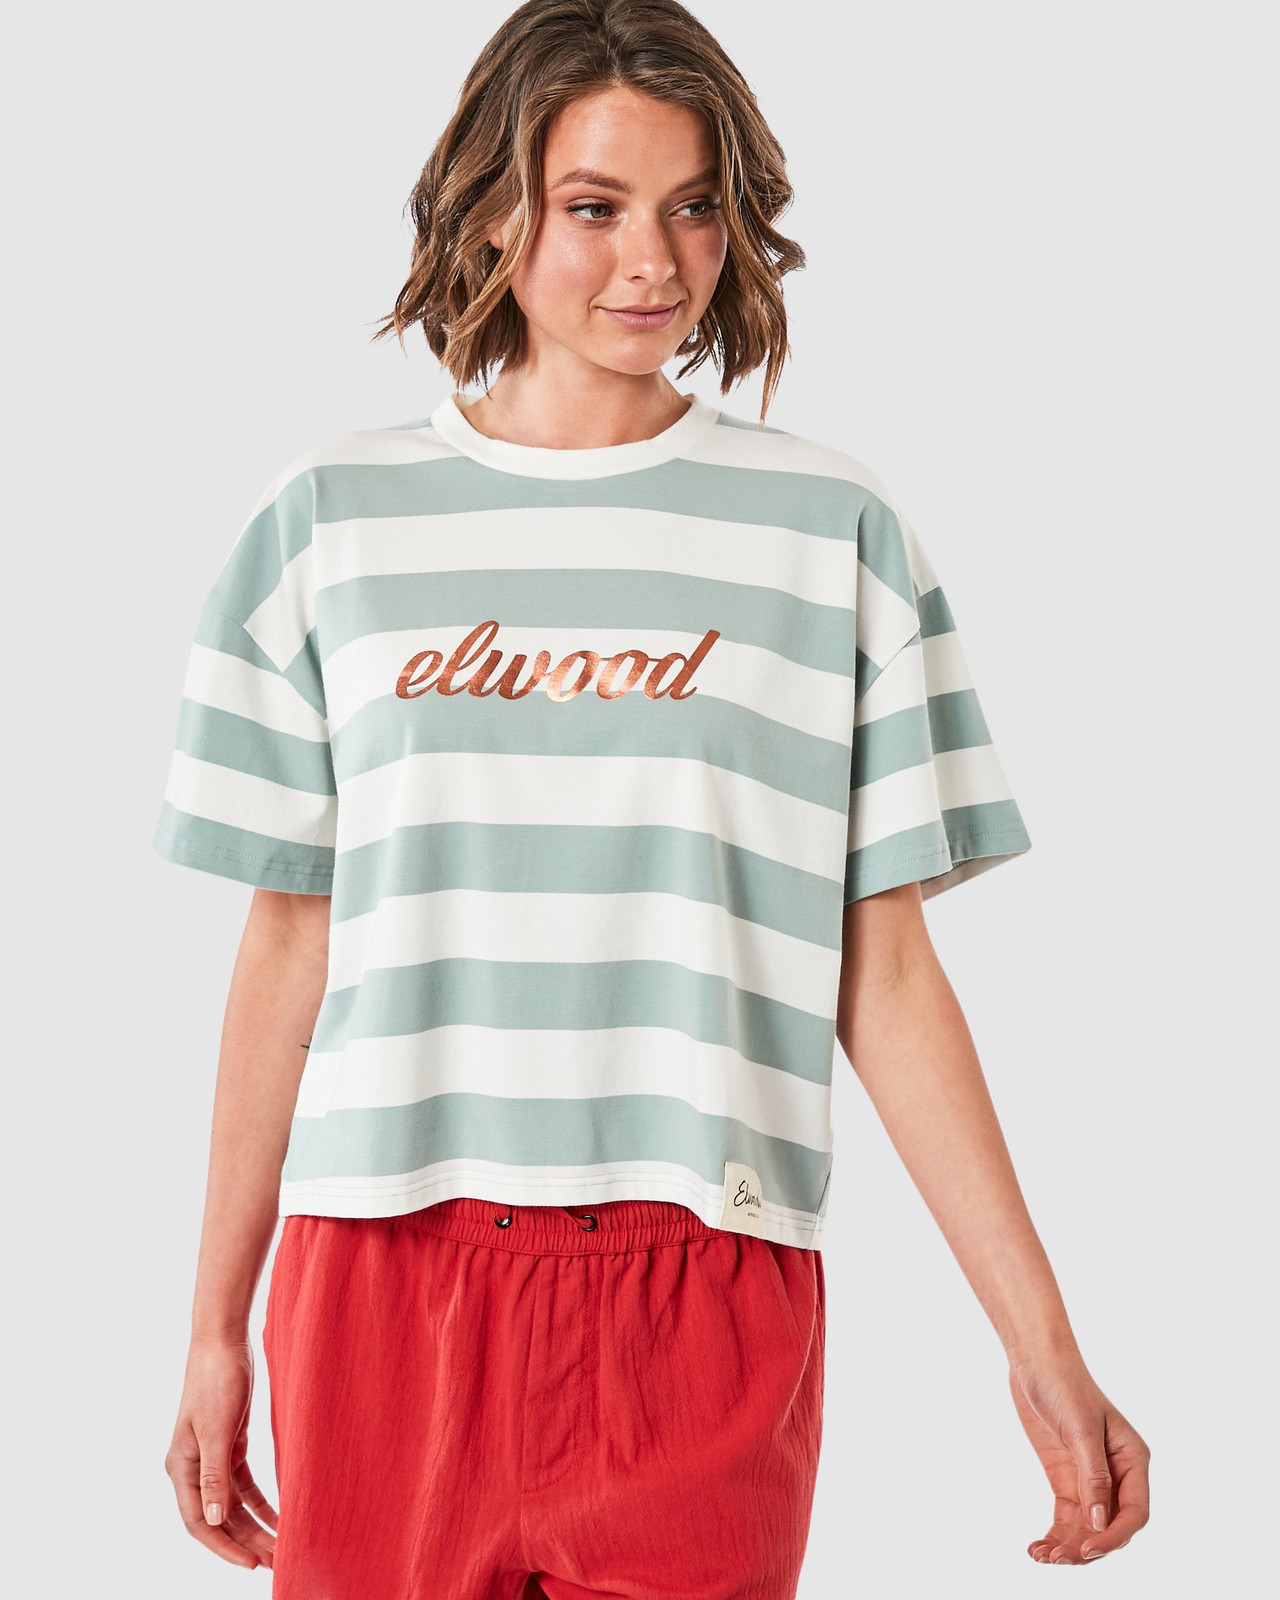 Elwood Womens Lilly Tee Green